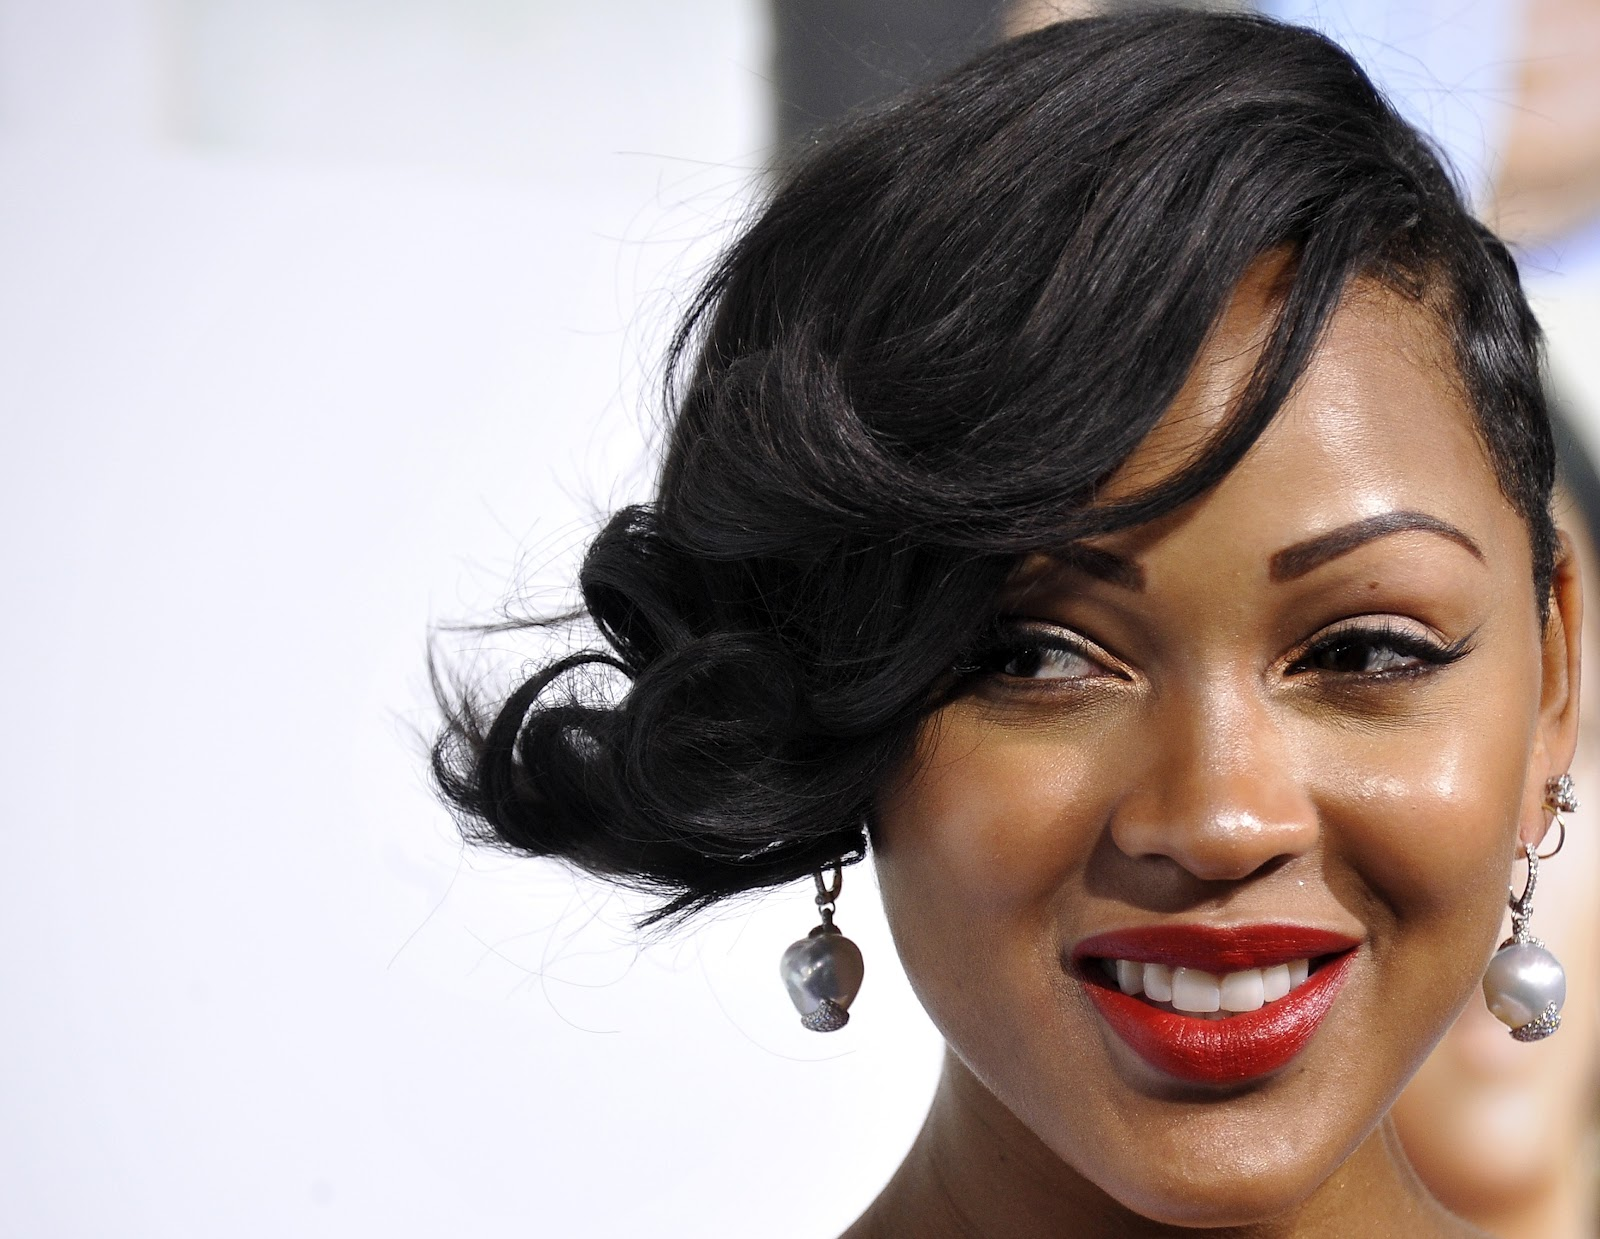 meagan good awesome and fabulous images hd wallpapers photos and ...